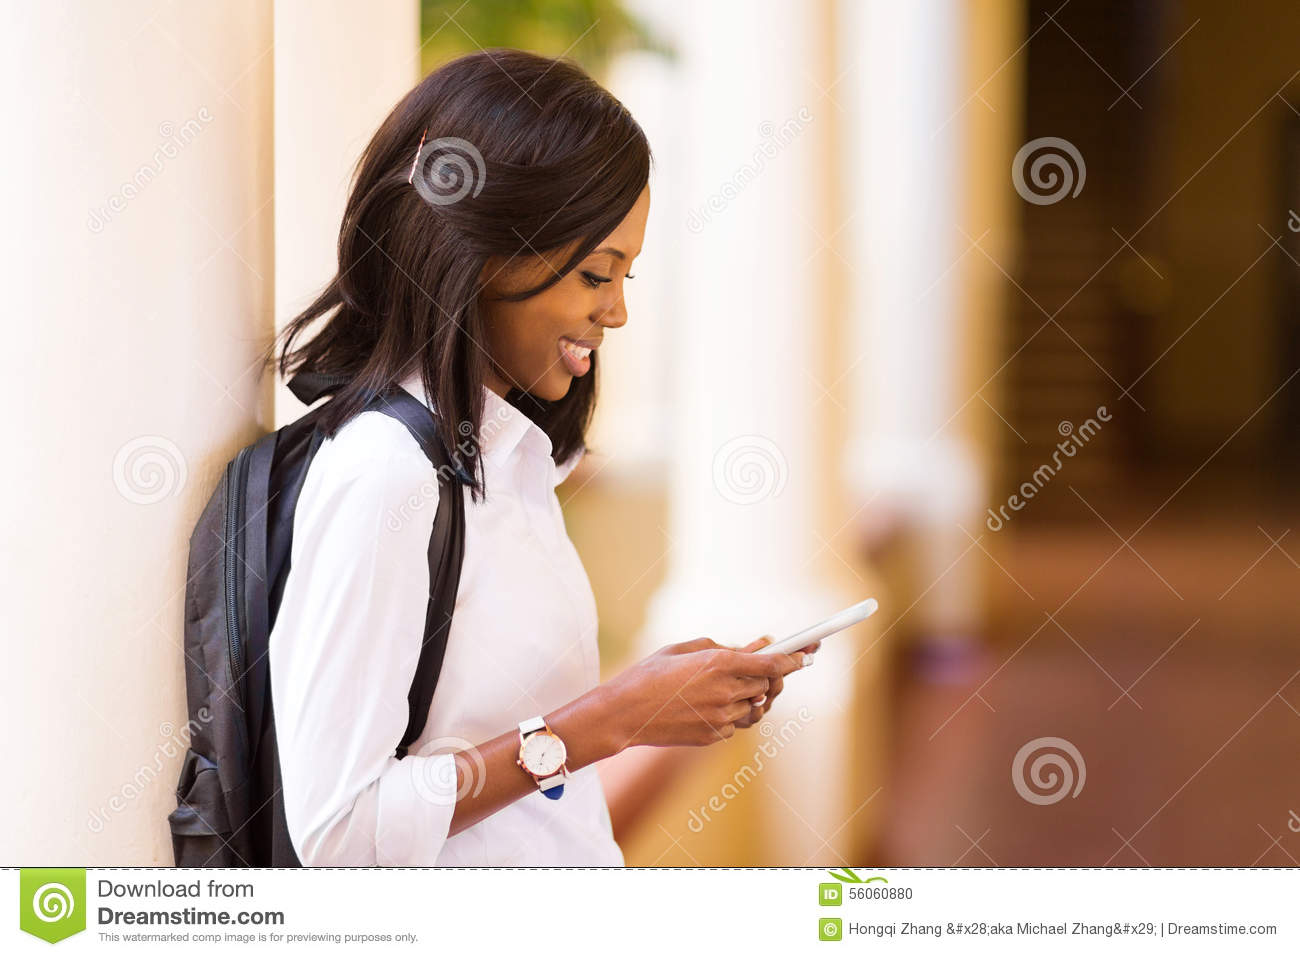 cell phone use academic Researchers report that frequent cell phone use appears to be associated with reduced academic performance, anxiety and unhappiness in college students.